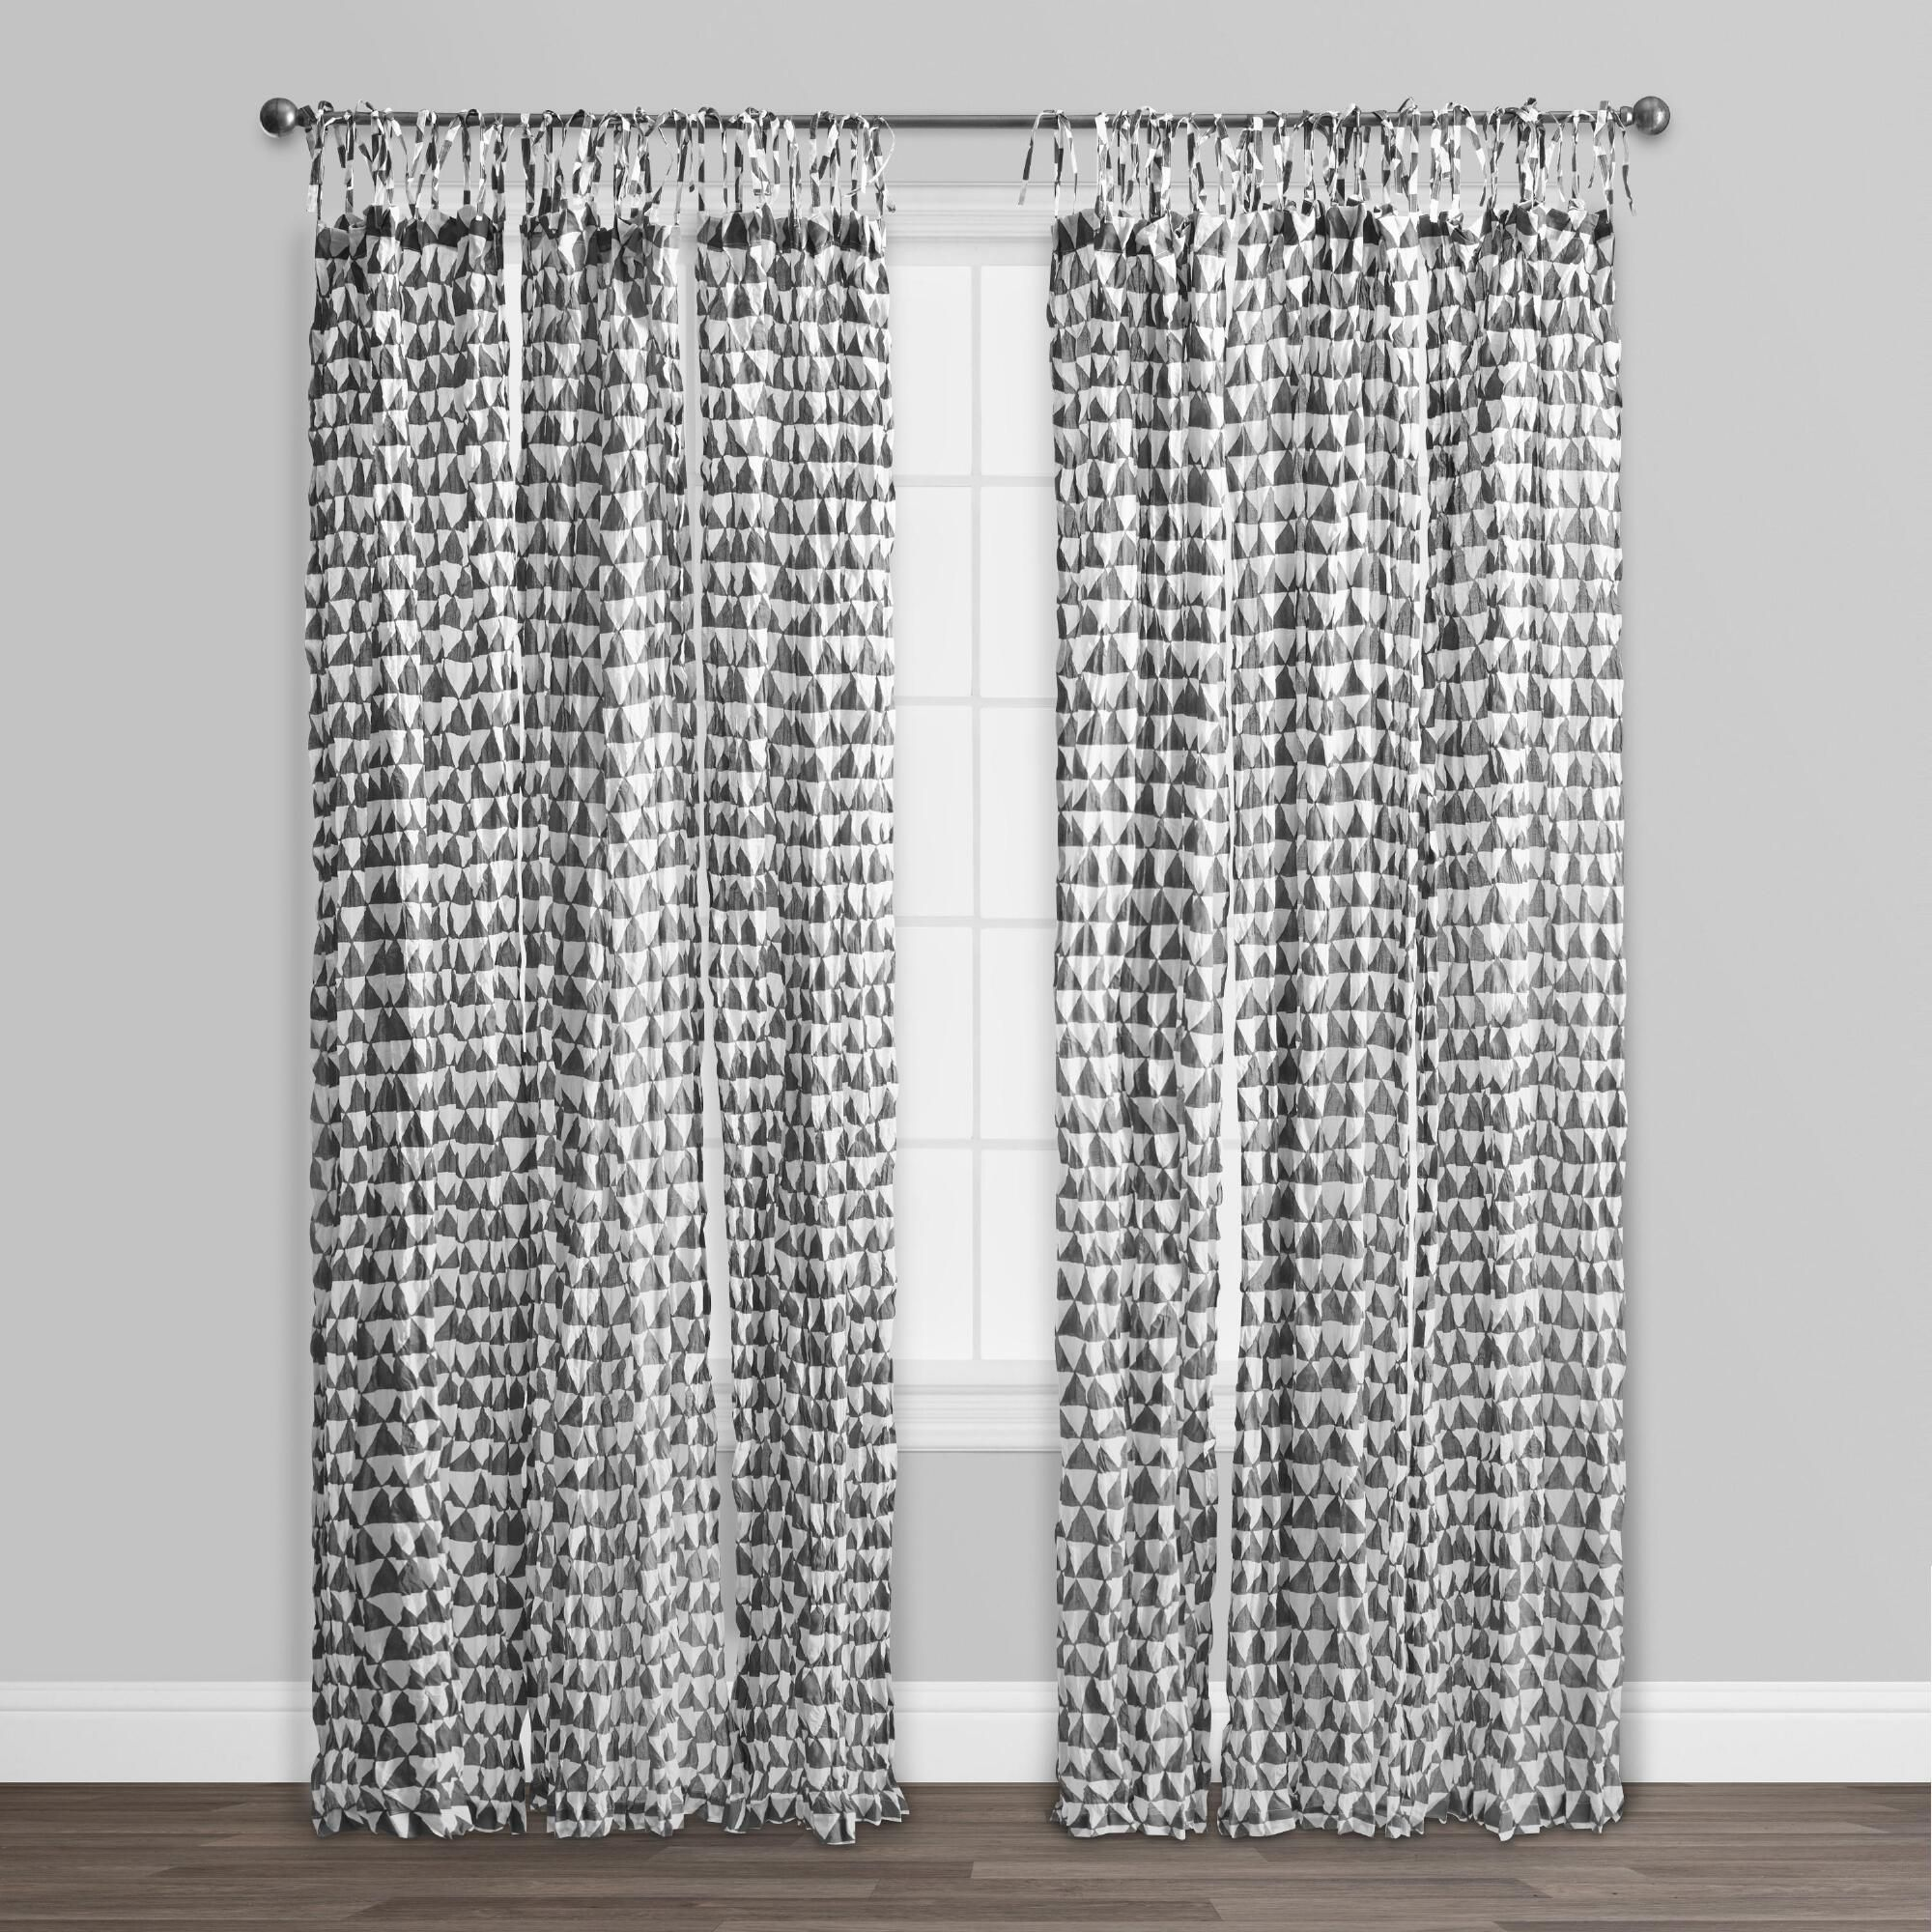 Gray And White Triangle Cotton Voile Curtains Set Of 2 World Market Voile Curtains Curtains Tie Top Curtains